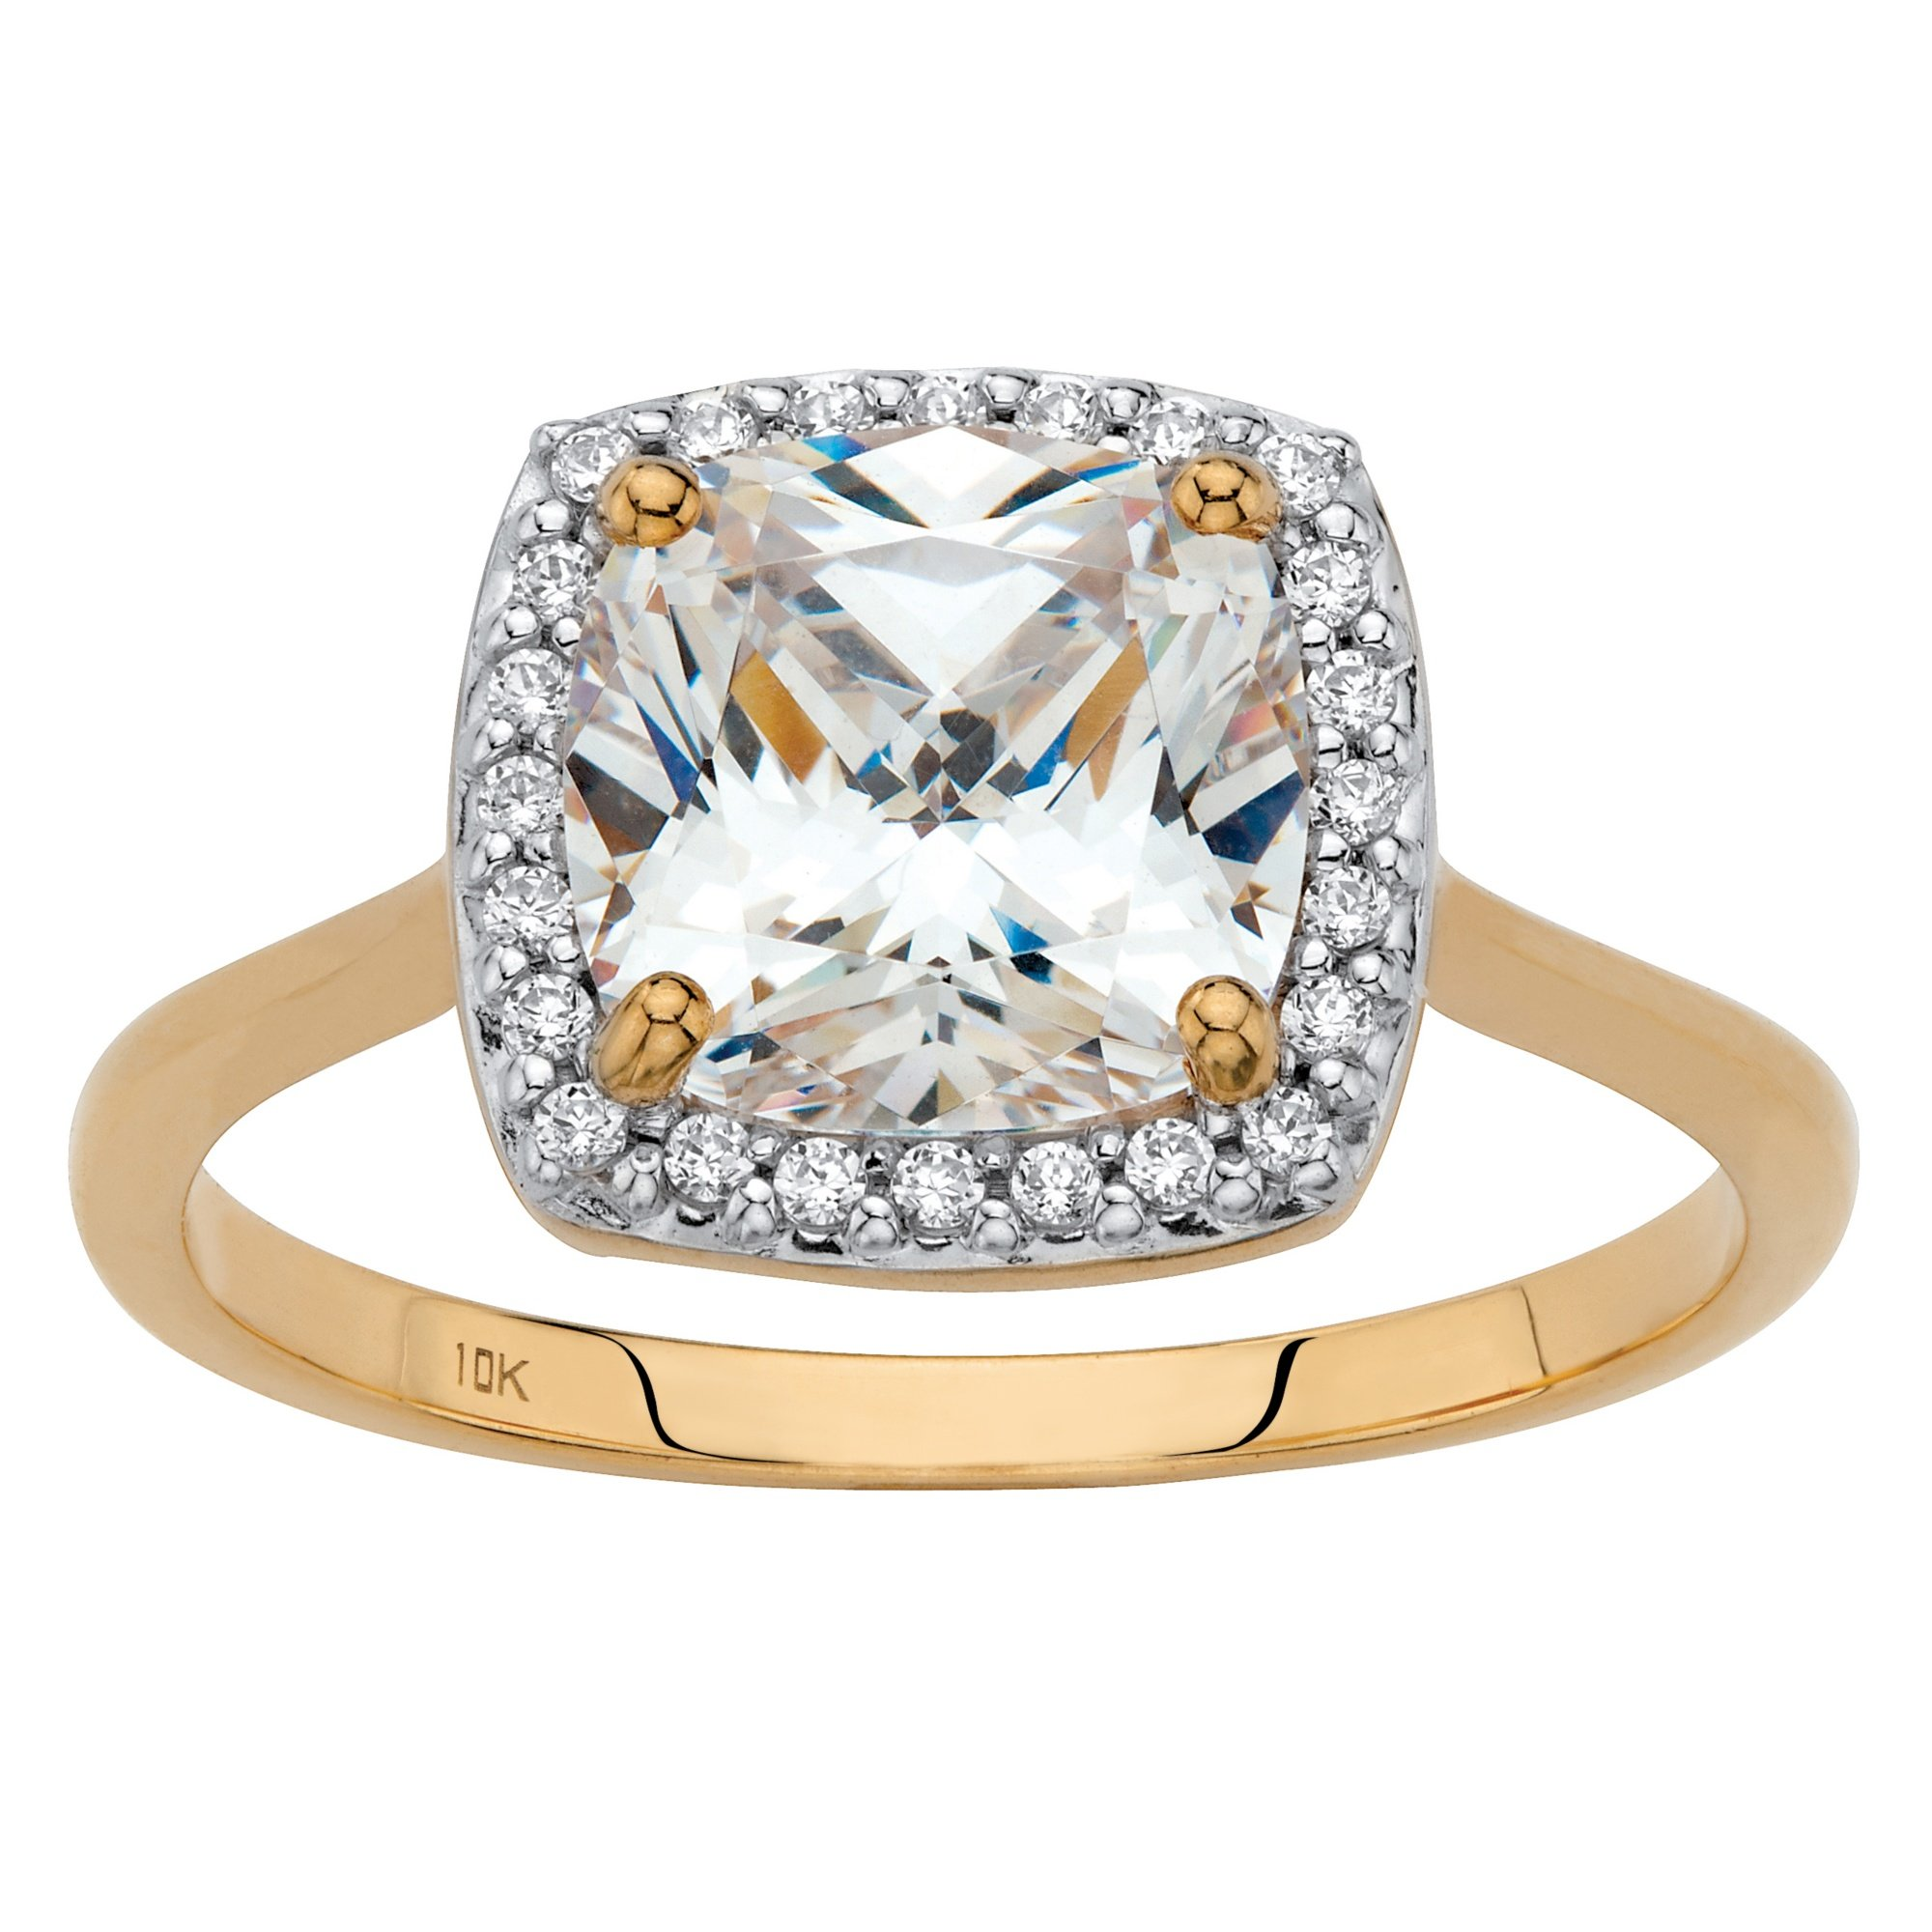 Solid 10K Yellow Gold Cushion Cut Cubic Zirconia Halo Engagement Ring Size 10